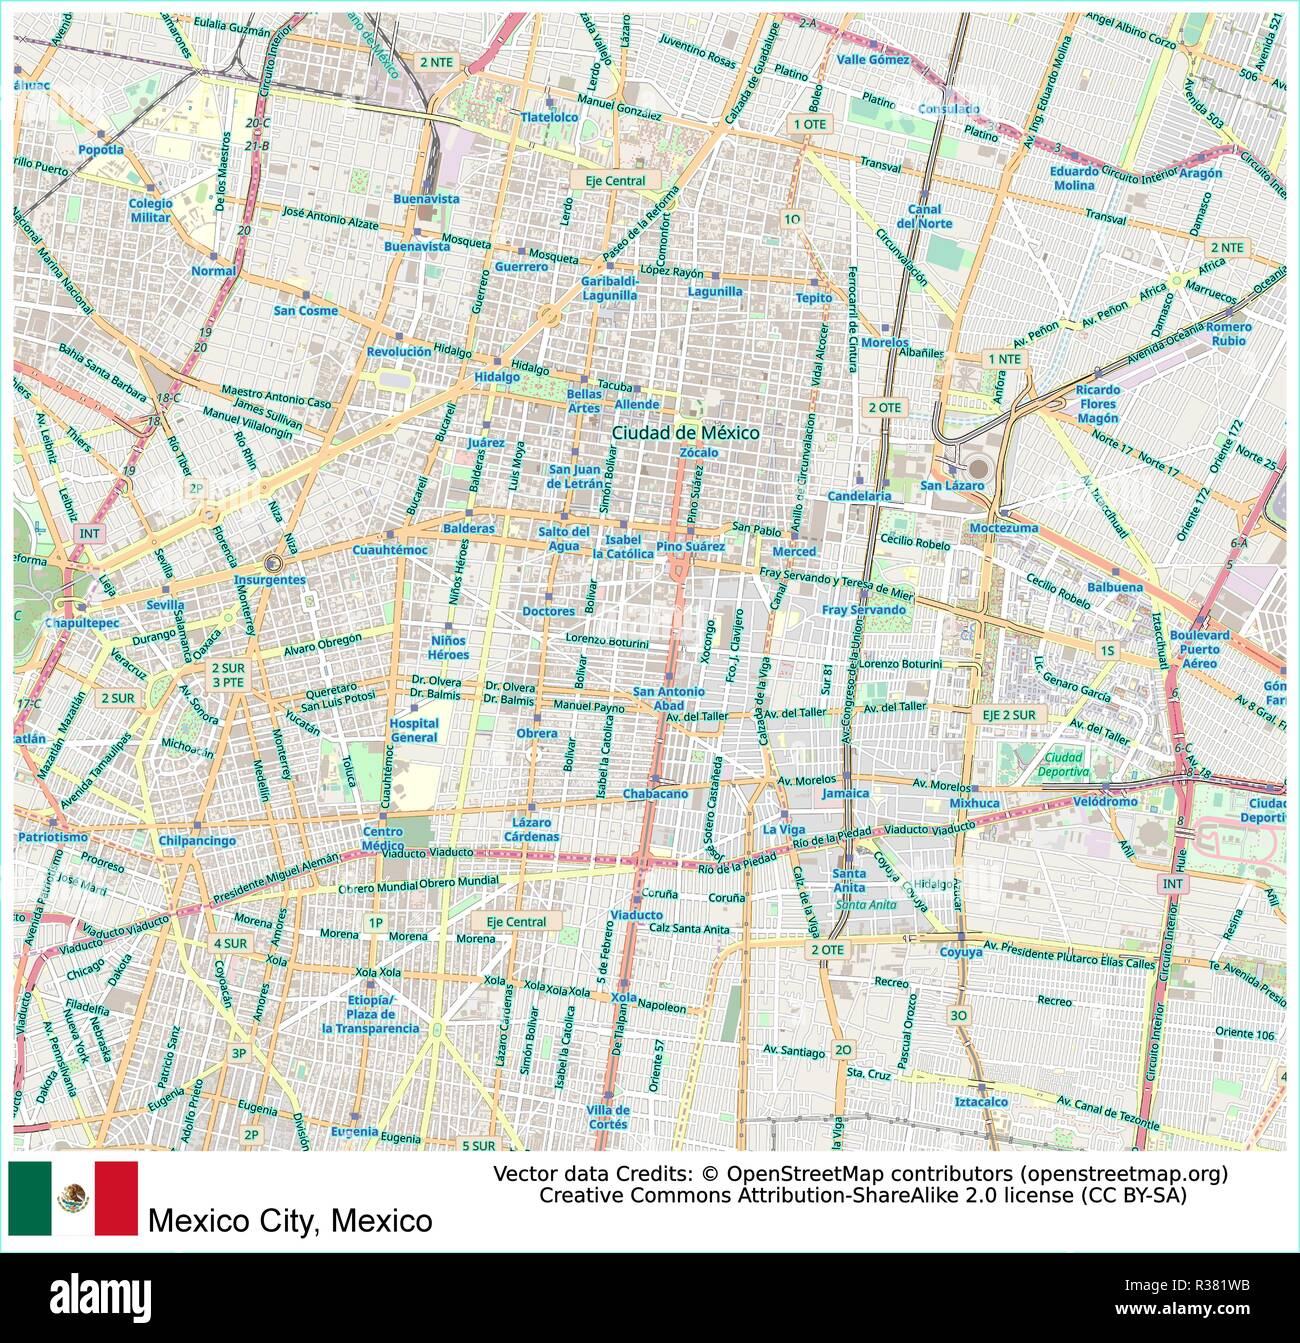 Mexico city, Mexico,Aztec,Valley of Mexico,Spanish,Greater Mexico City, - Stock Image